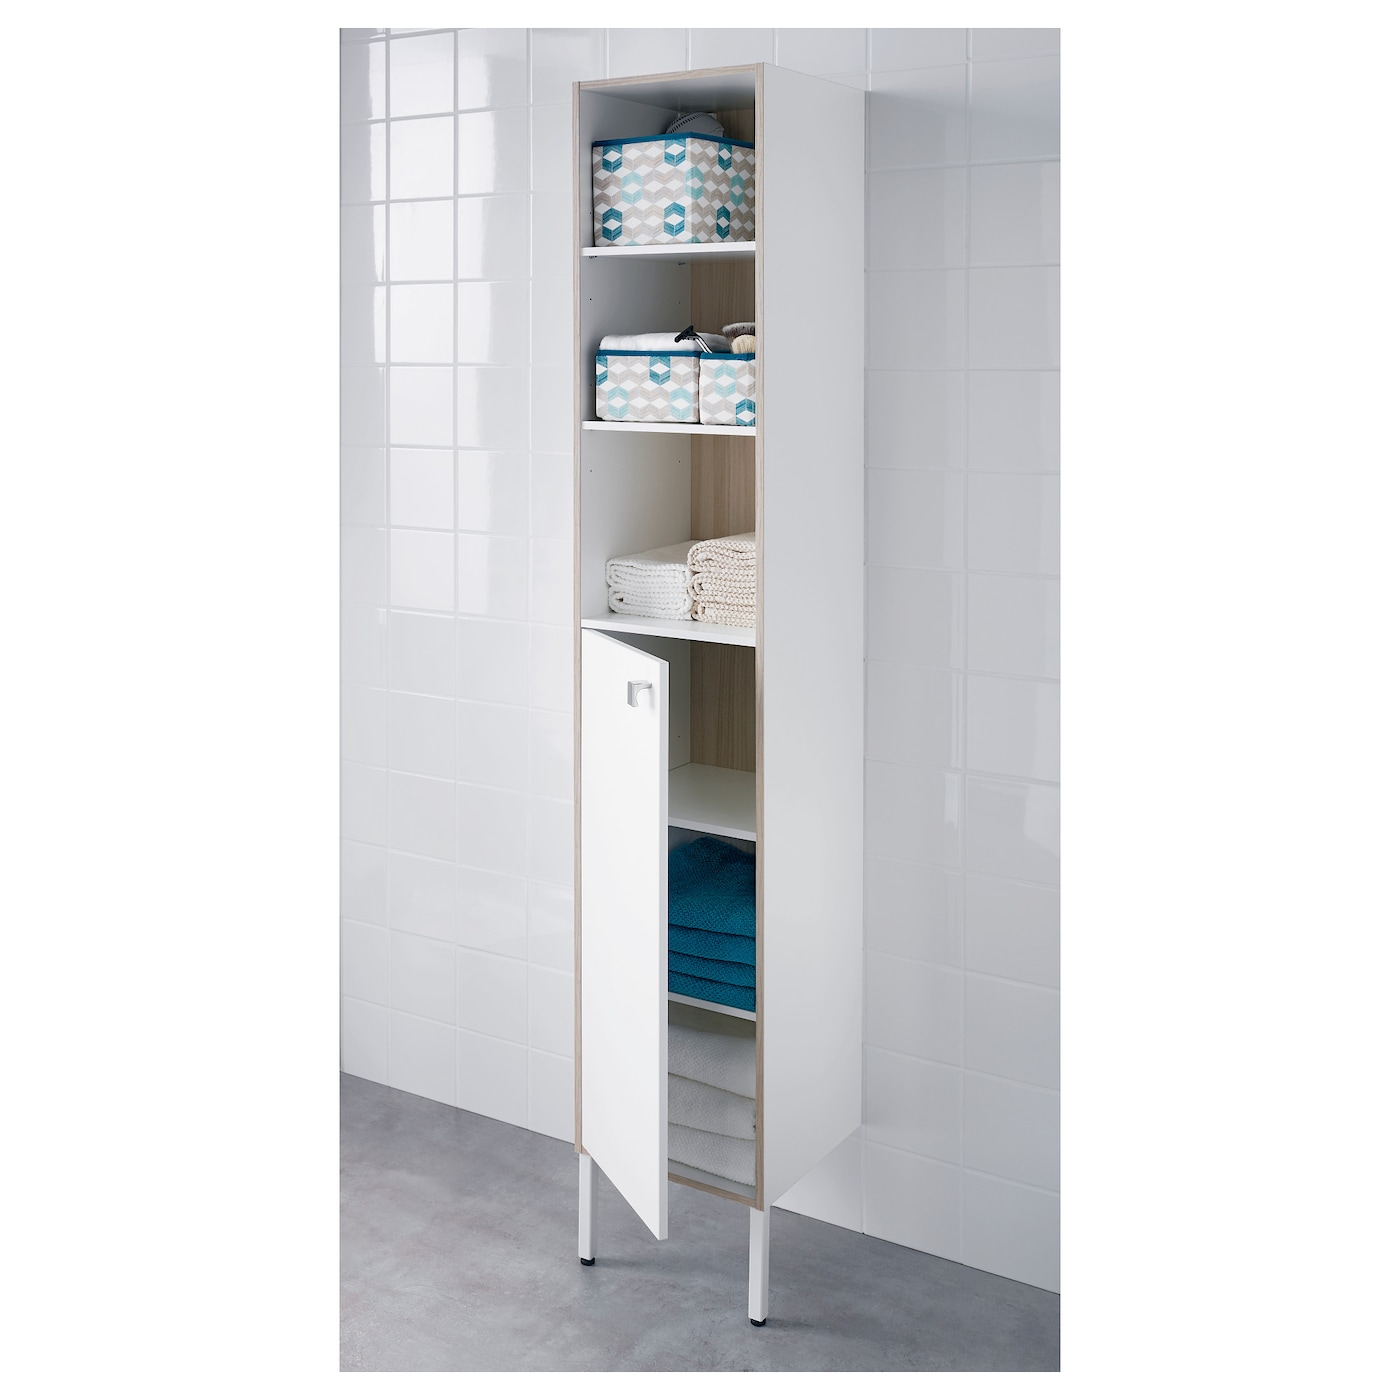 high cabinet for bathroom tyngen high cabinet white ash effect 30x29x177 cm ikea 16296